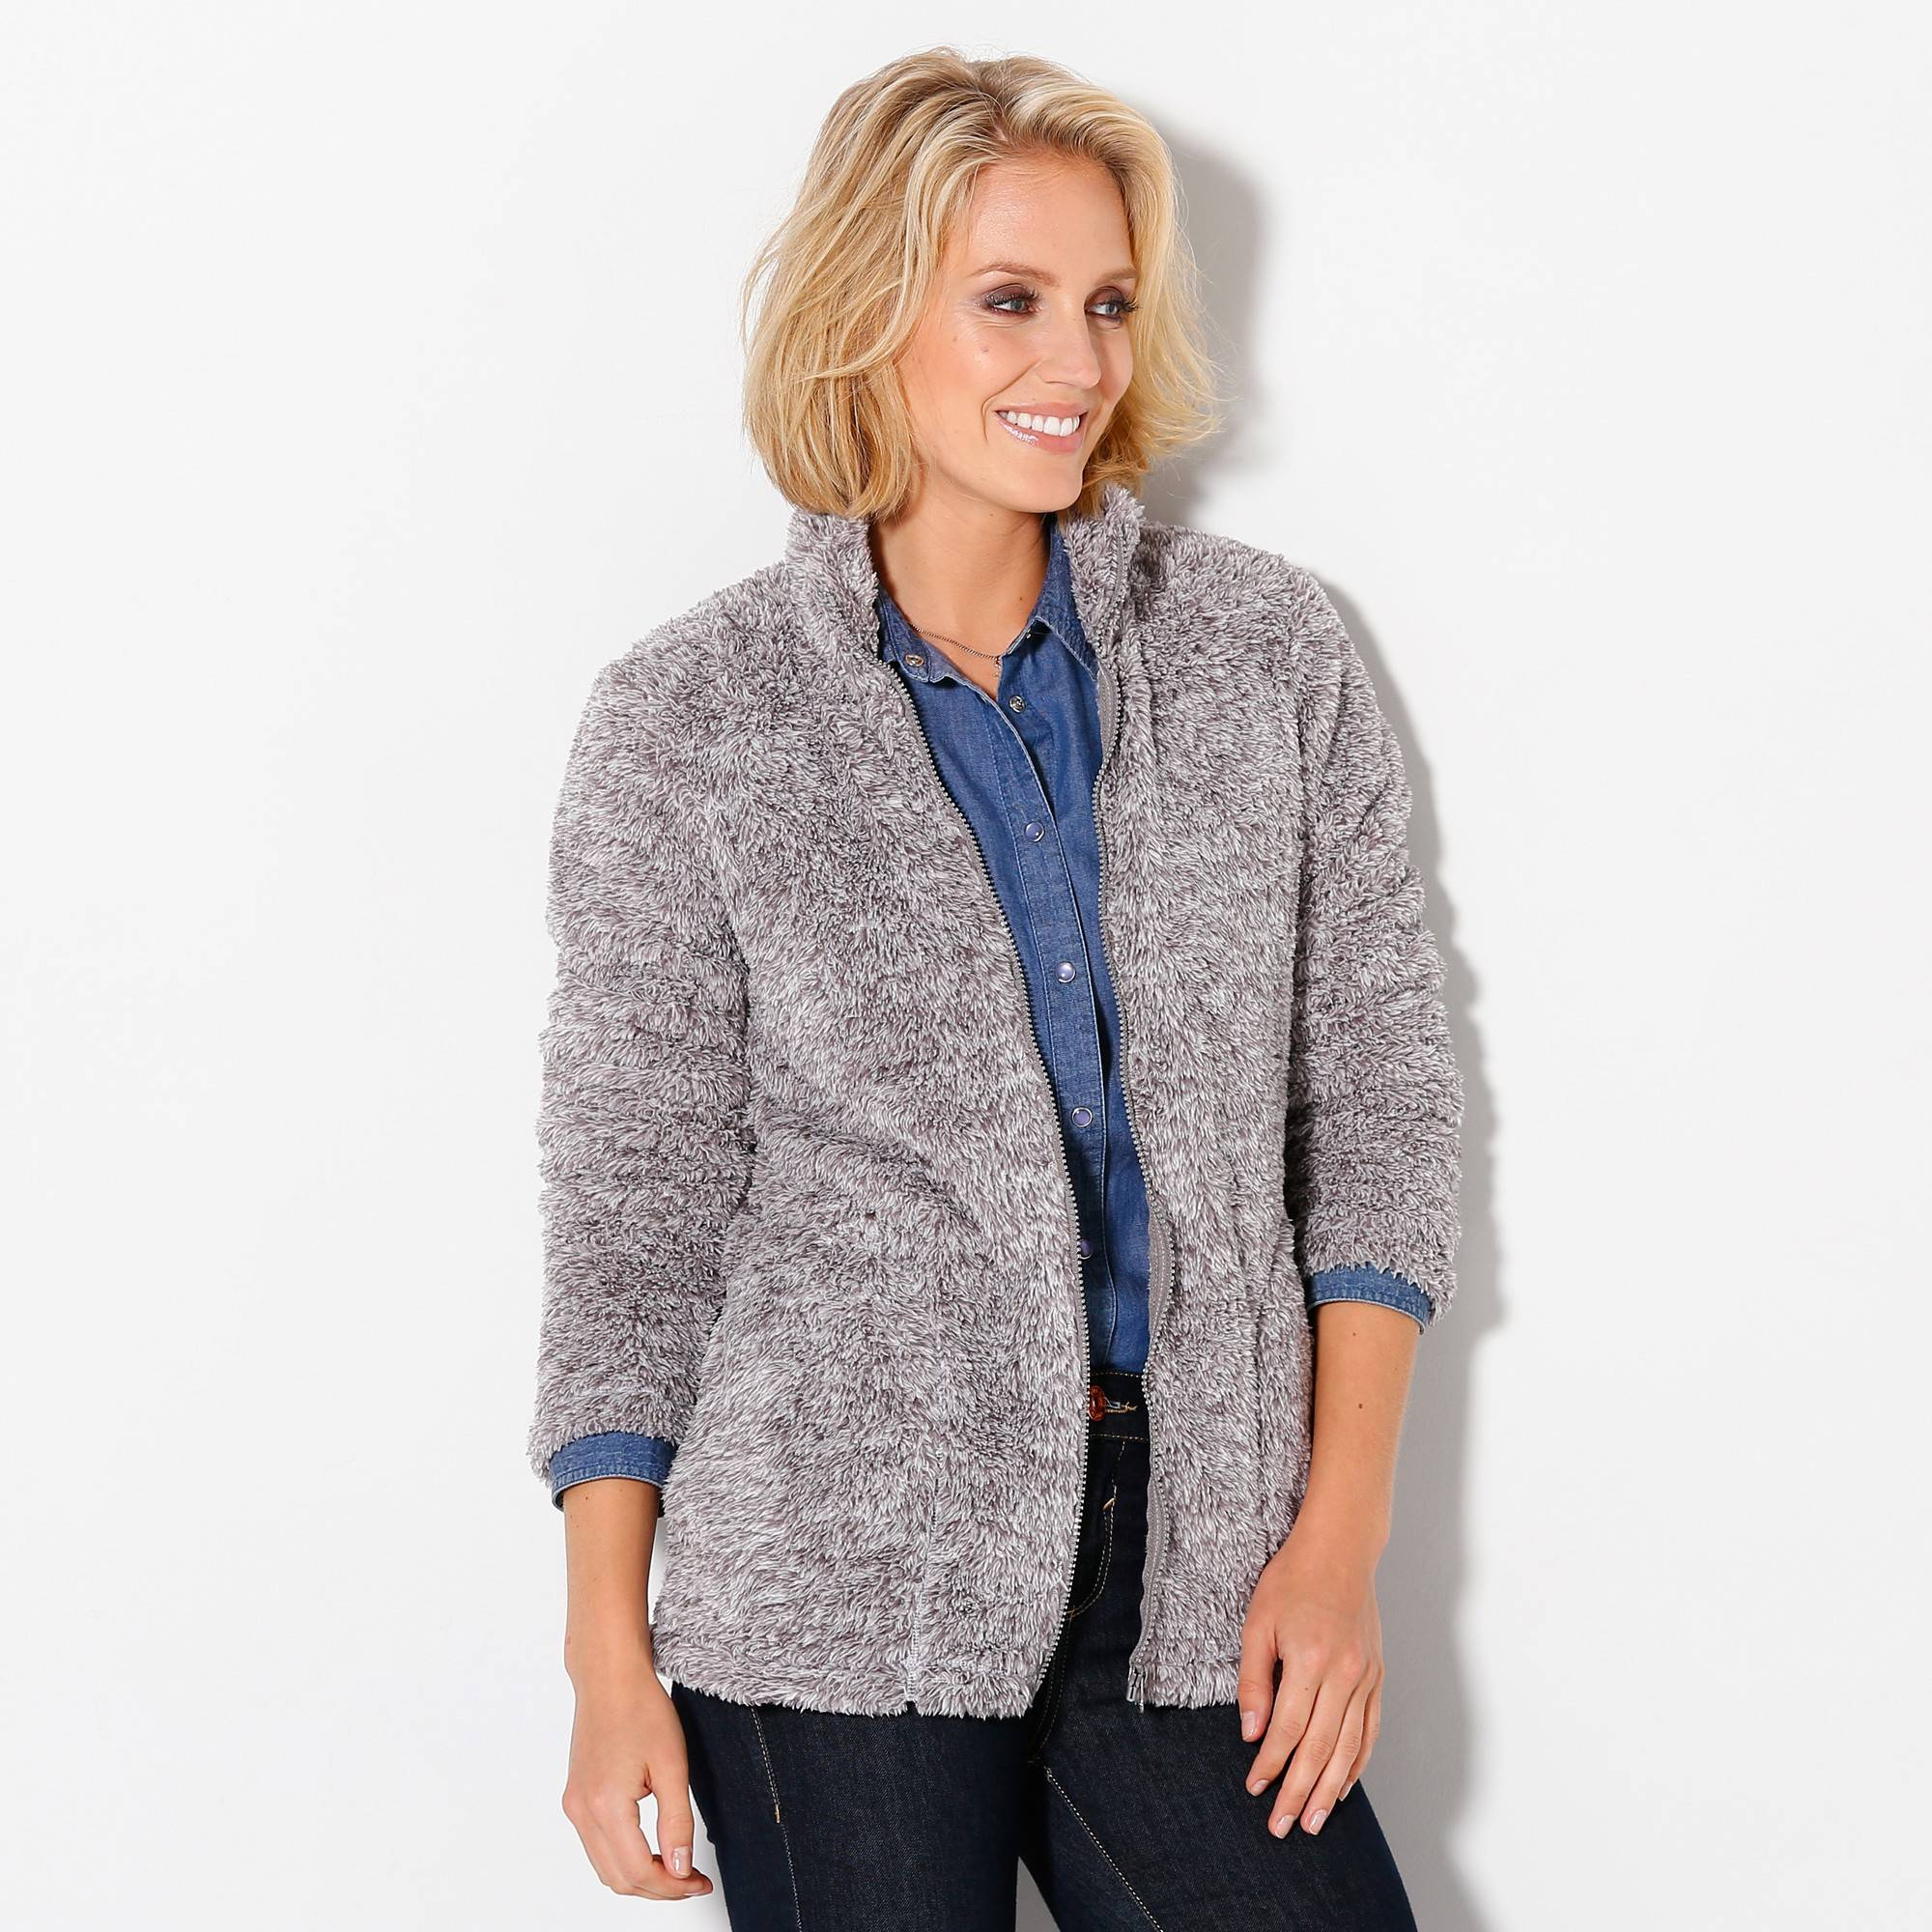 Casual Collection Veste maille peluche - Gris - Taille : 46,48 - Blancheporte